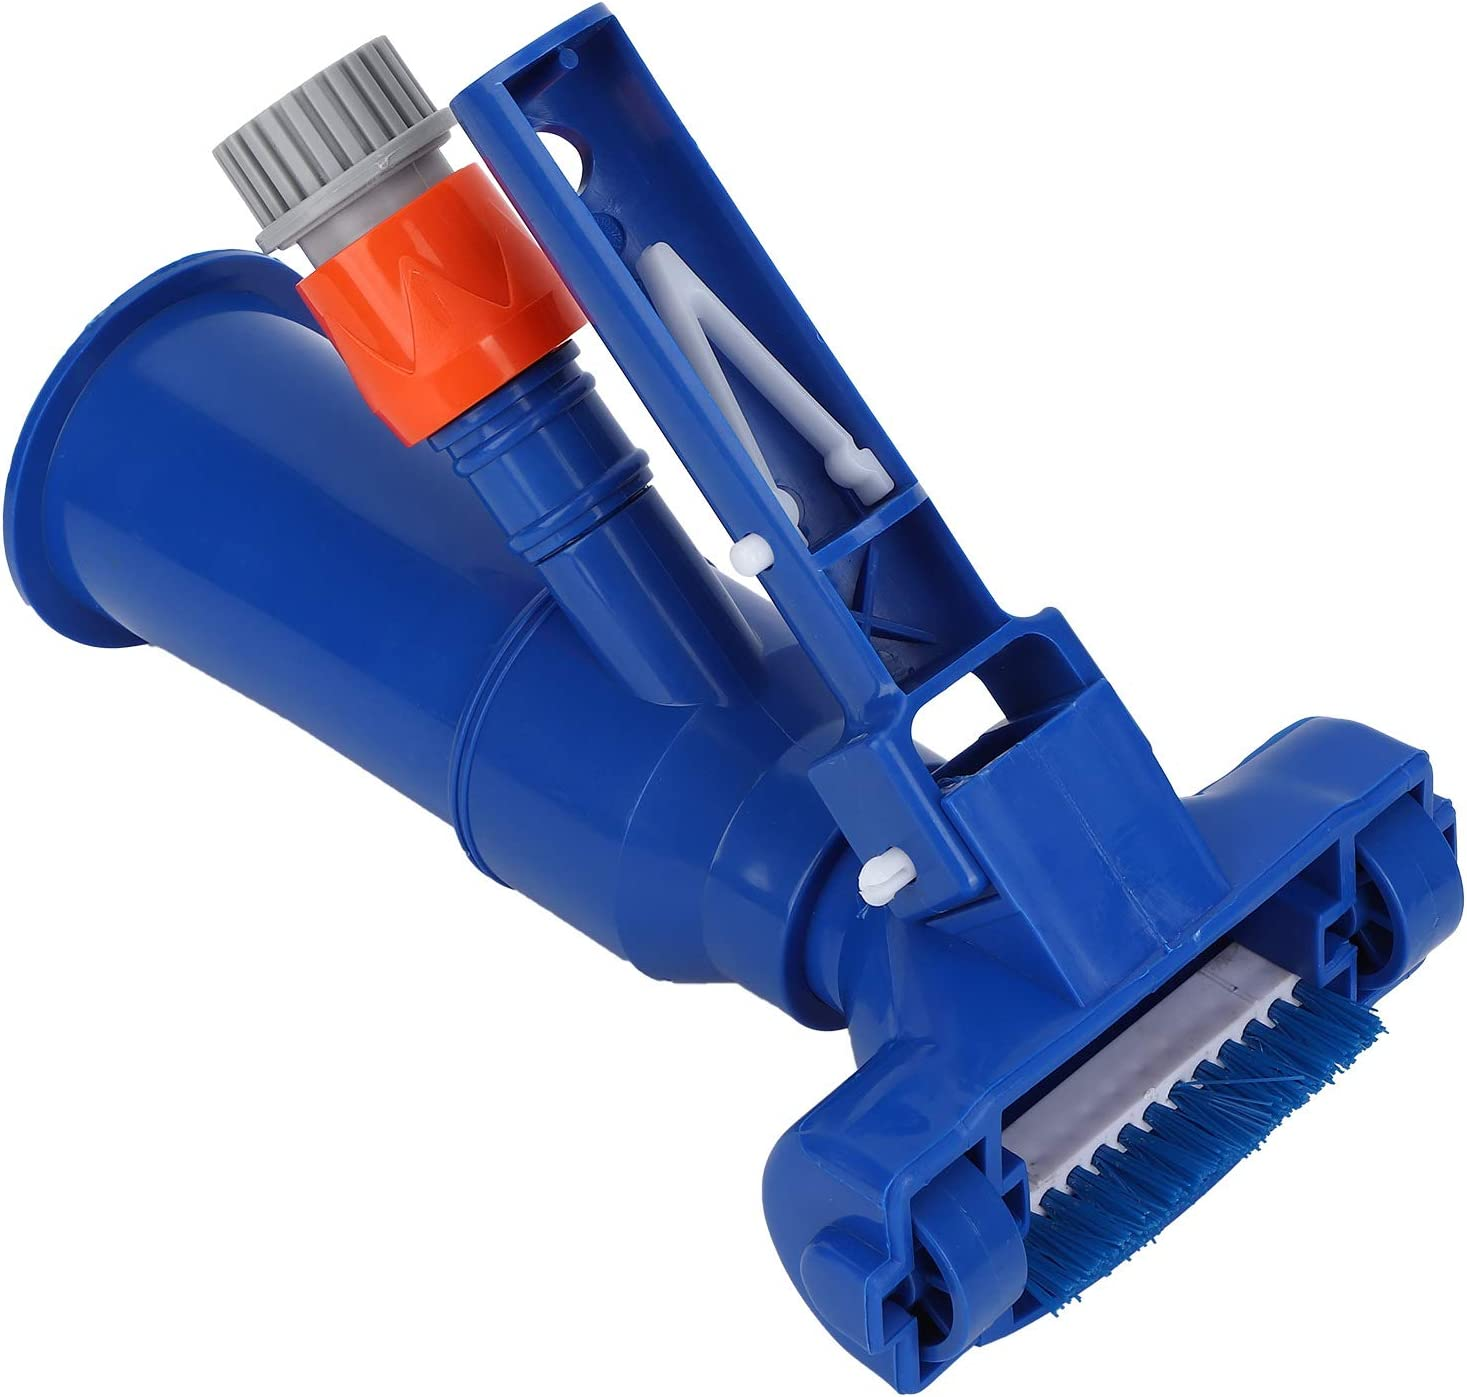 BOTEGRA Pool Suction Head Ranking TOP17 Vacuum Accesso Kit Our shop OFFers the best service Cleaning